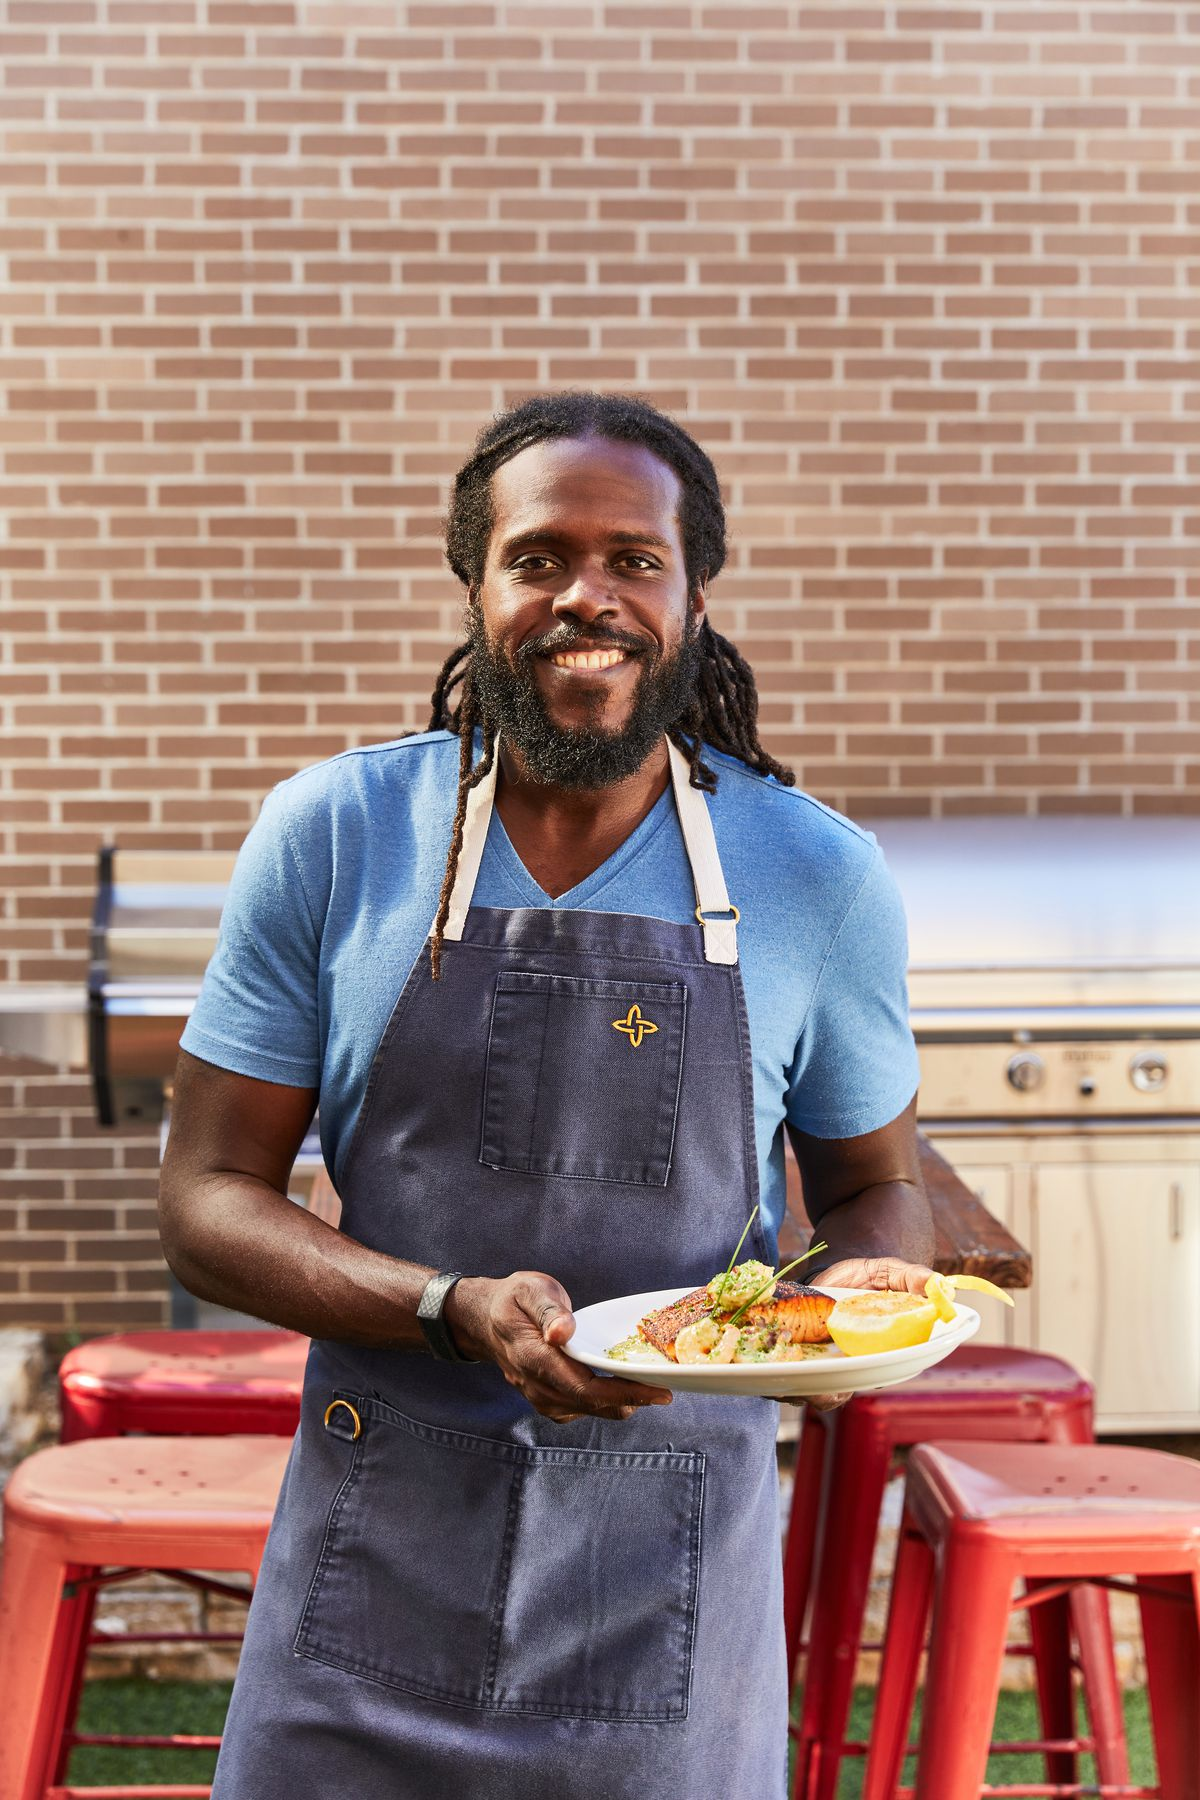 A smiling and standing man holding a plate of food